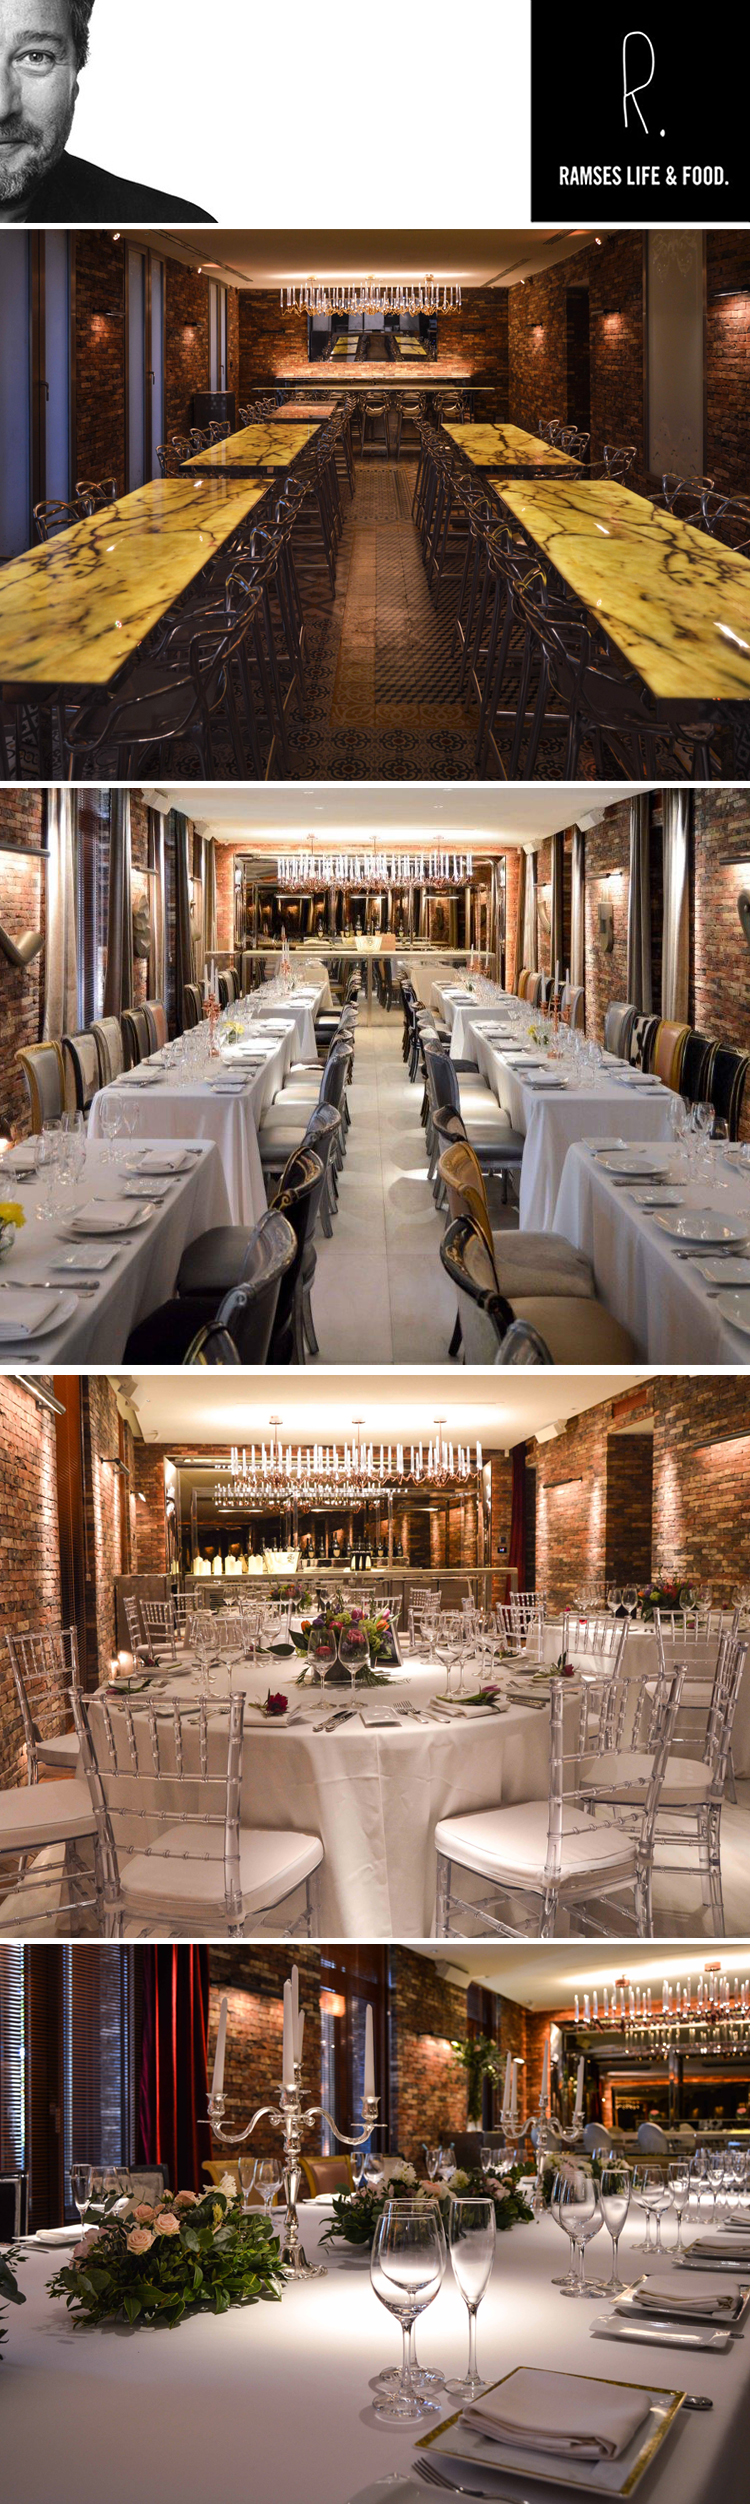 Il Pezzo 3 Chandelier at Ramses_Madrid_by Philippe Starck.jpg